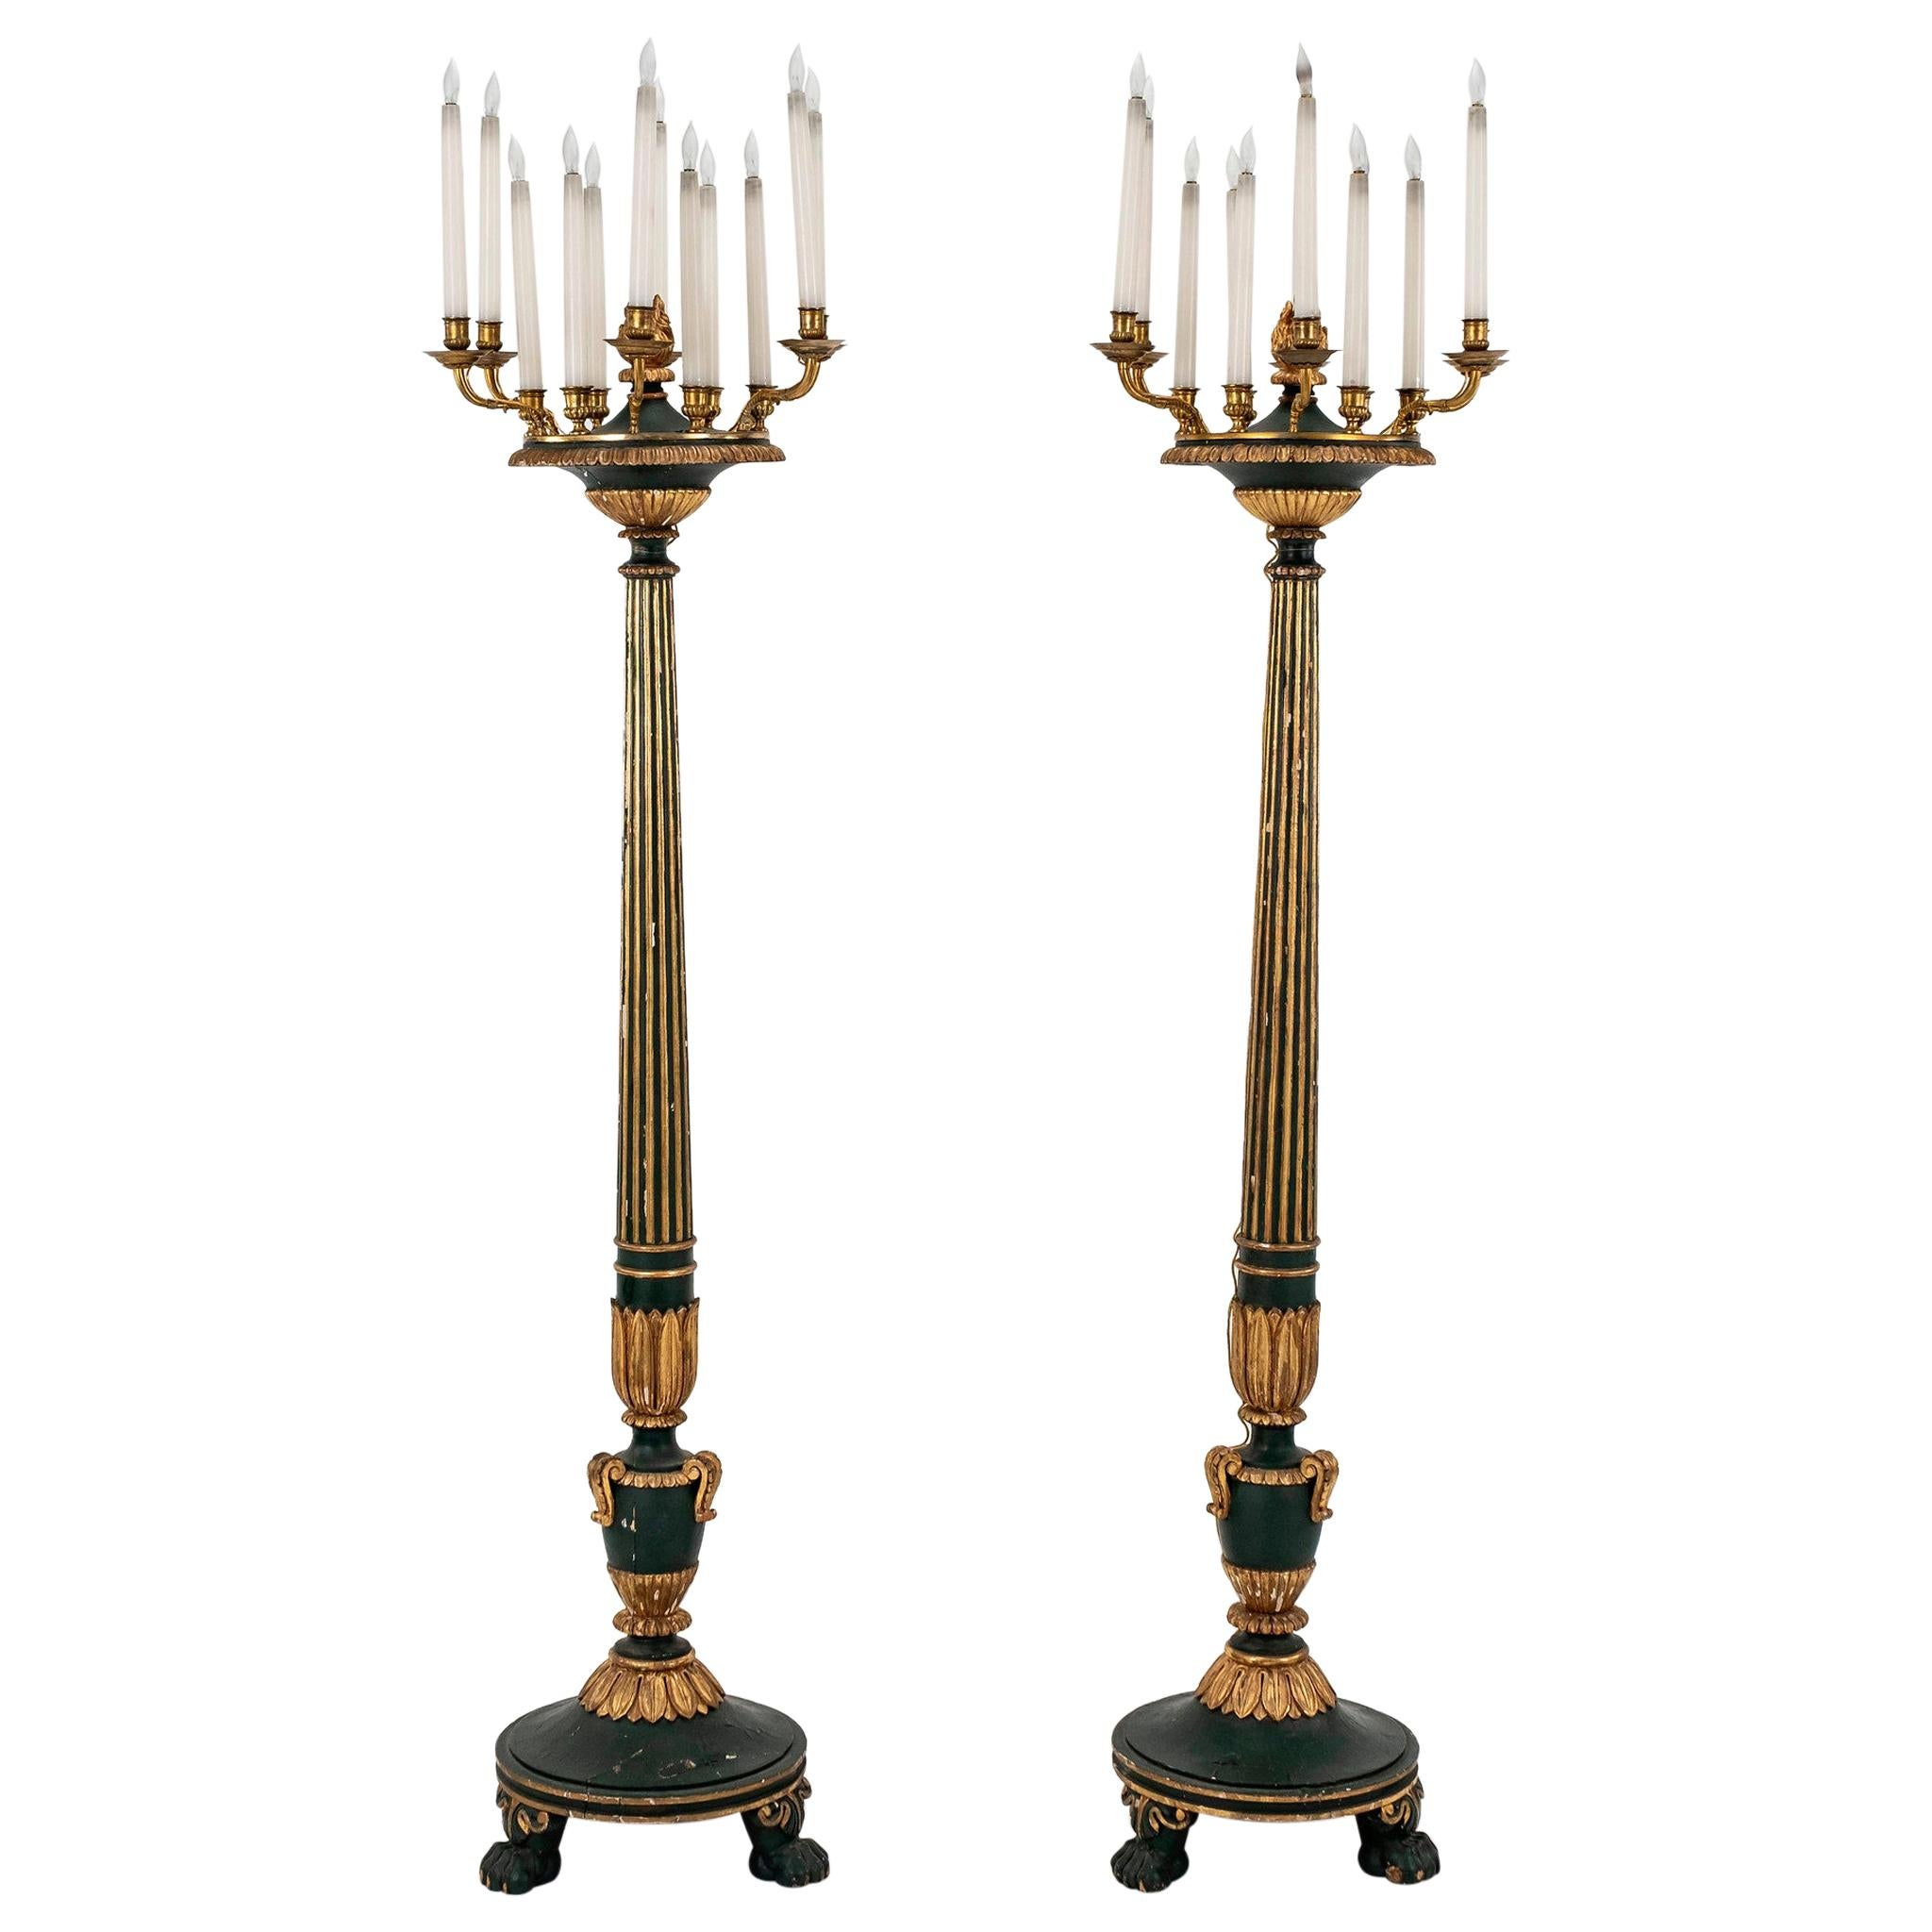 Pair of 19th Century French Louis XVI Style Torchieres